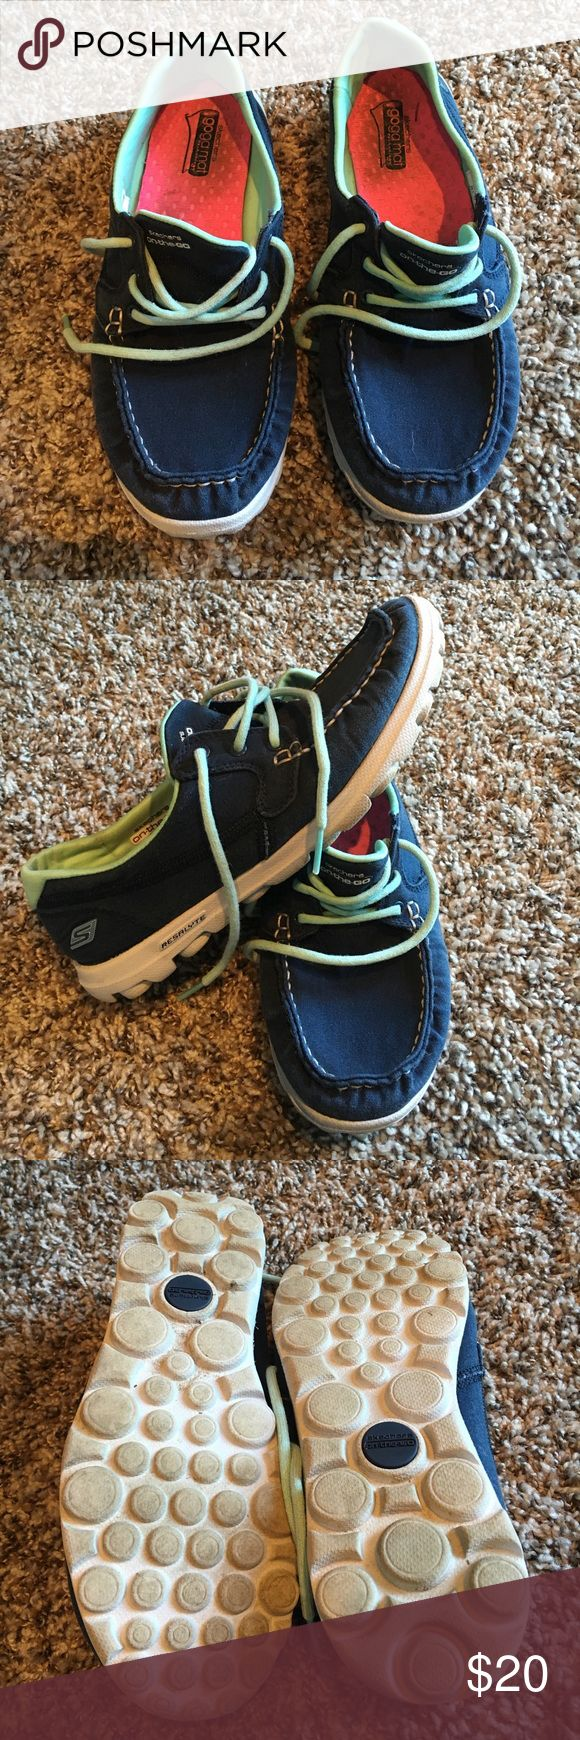 Skechers on the go goga mat shoes Gently worn, great condition! Only worn a handful of times, show no wear on bottoms or on soles. Just some staining on the inside heels, they have been washed well. Skechers Shoes Sneakers